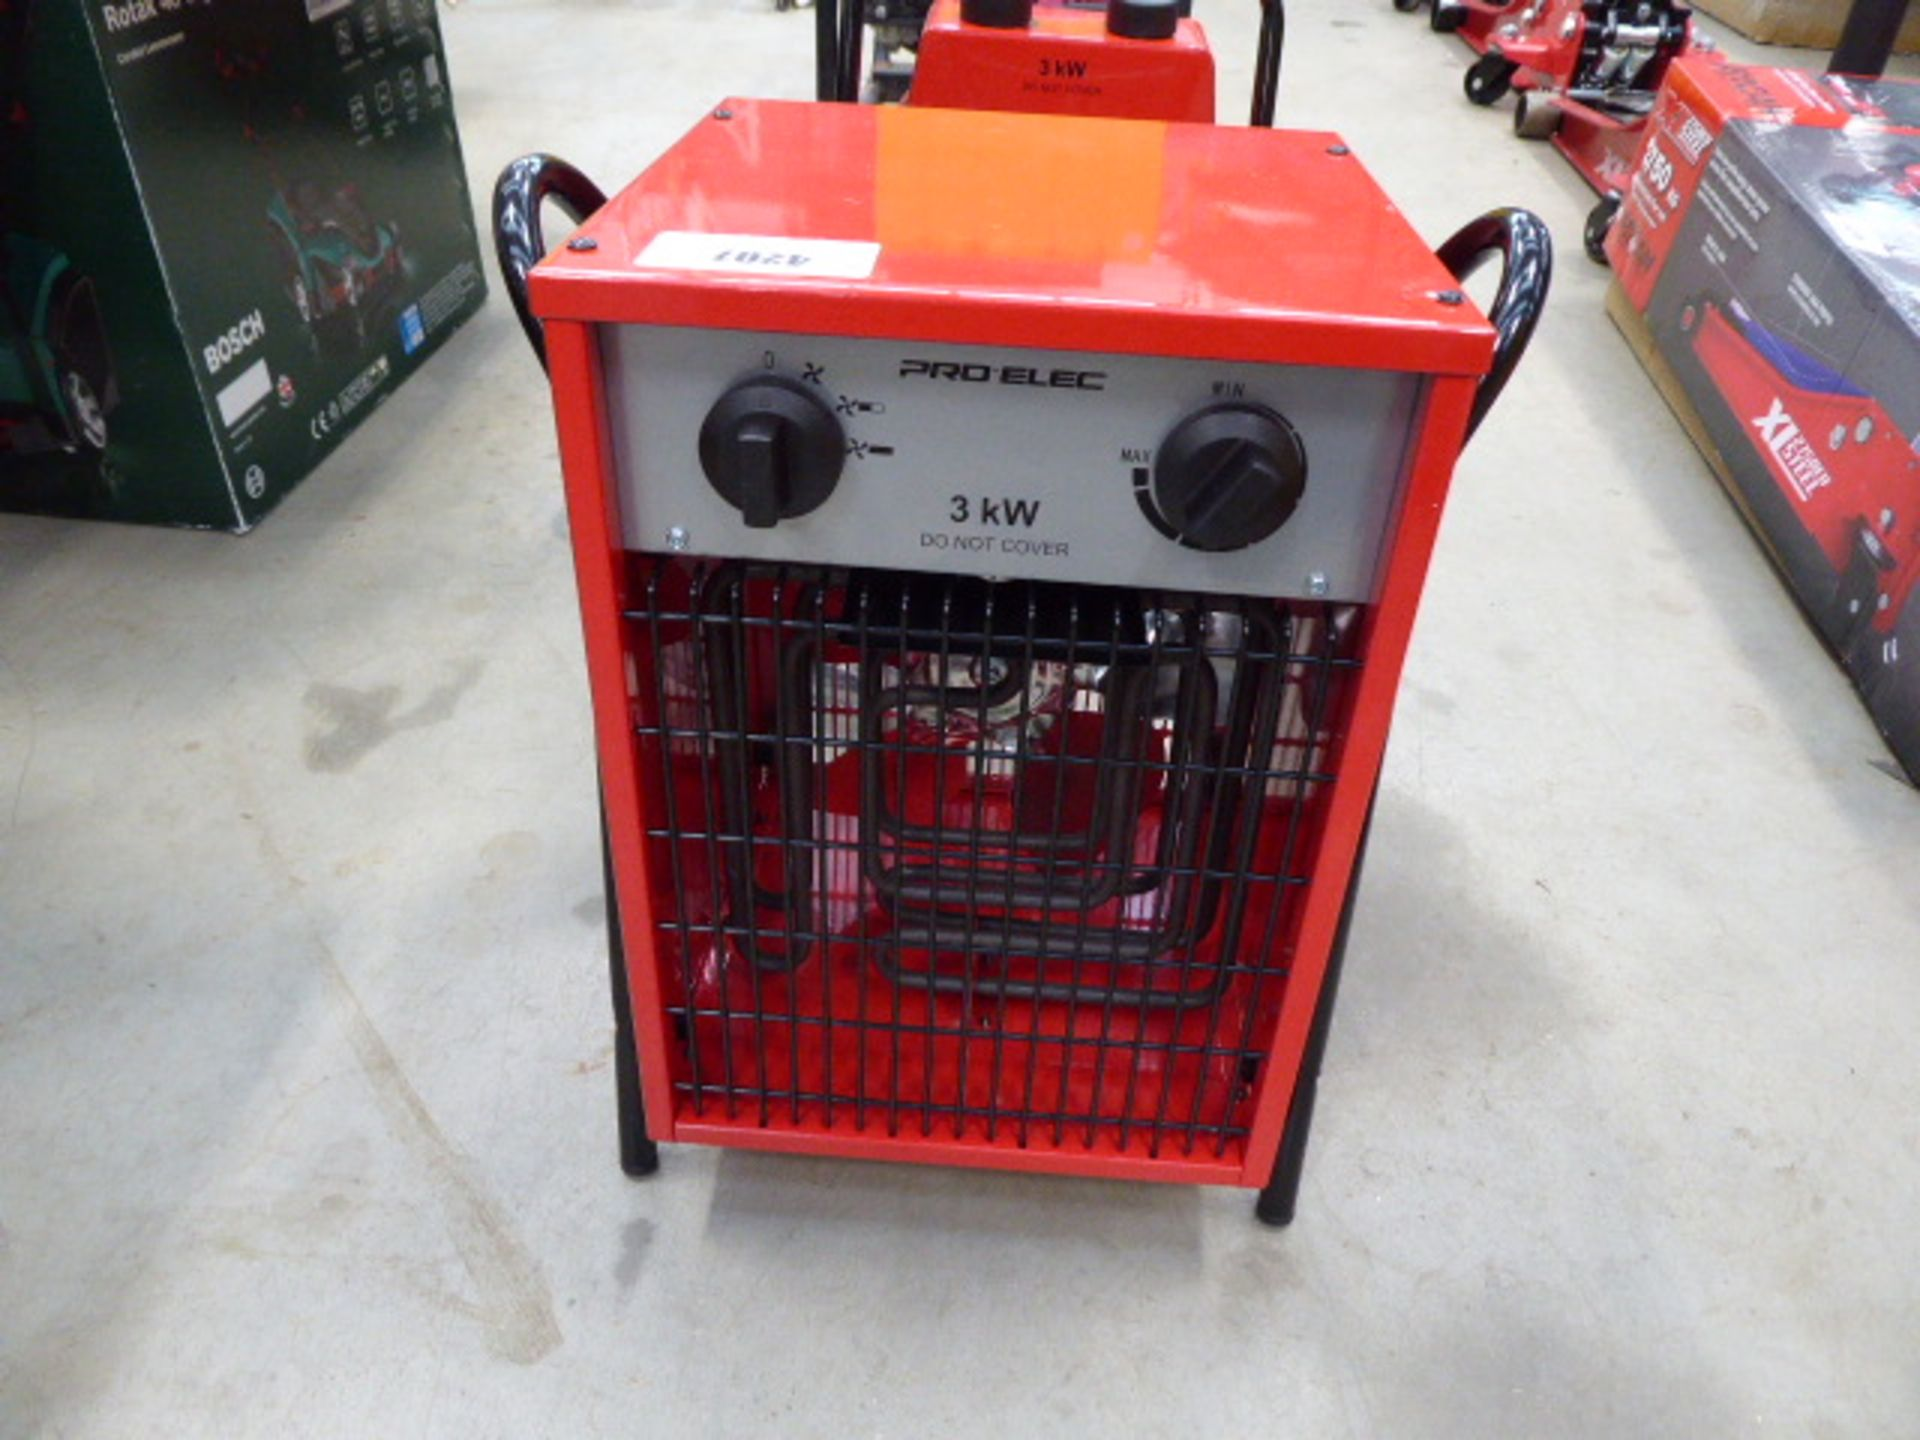 1 square and 1 round red electric heater - Image 2 of 3